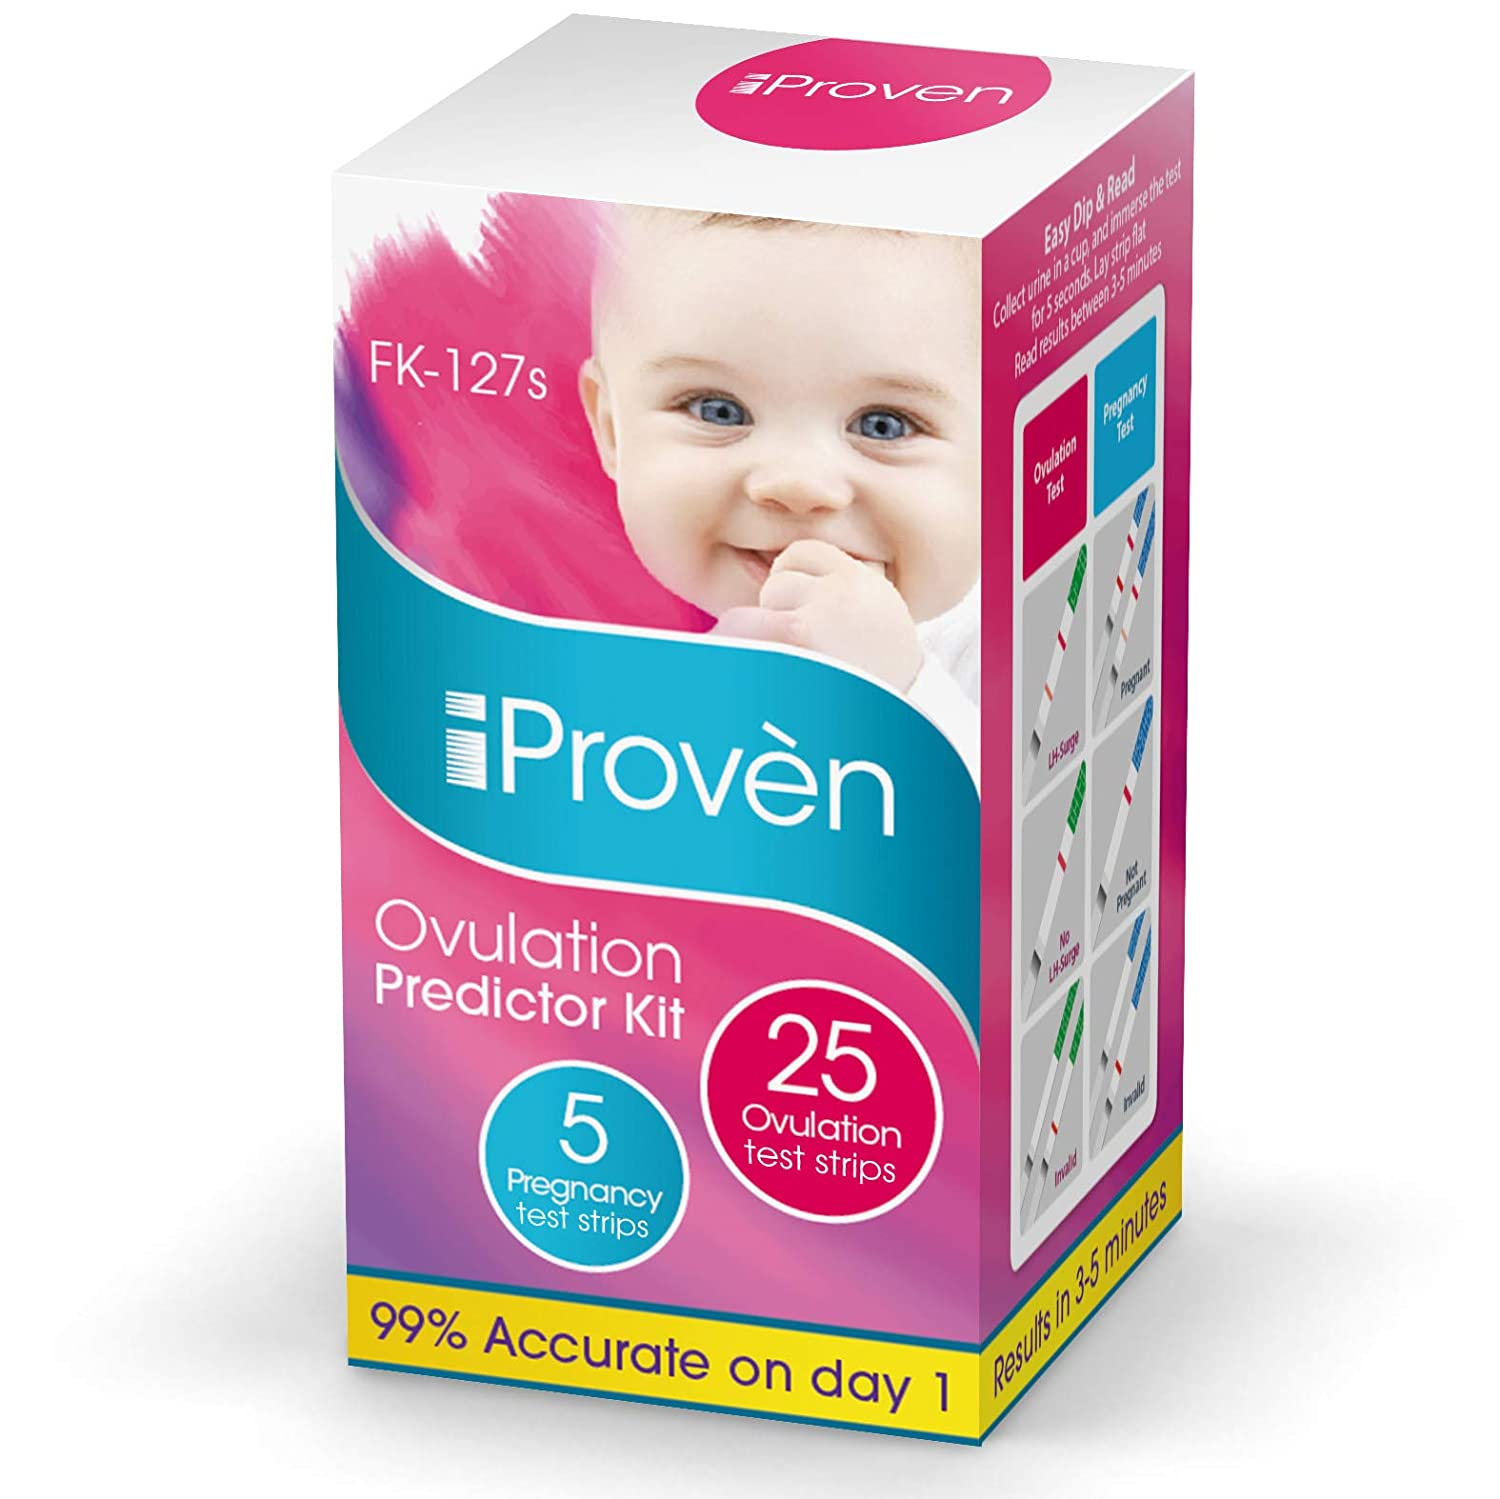 Best Ovulation Predictor Kit - 25 Ovulation Test Strips and 5 Pregnancy Test Strips - Fertility Test for Women - for Trying to Conceive Couples - Ovulation Tests for Women - FK-127s 2019